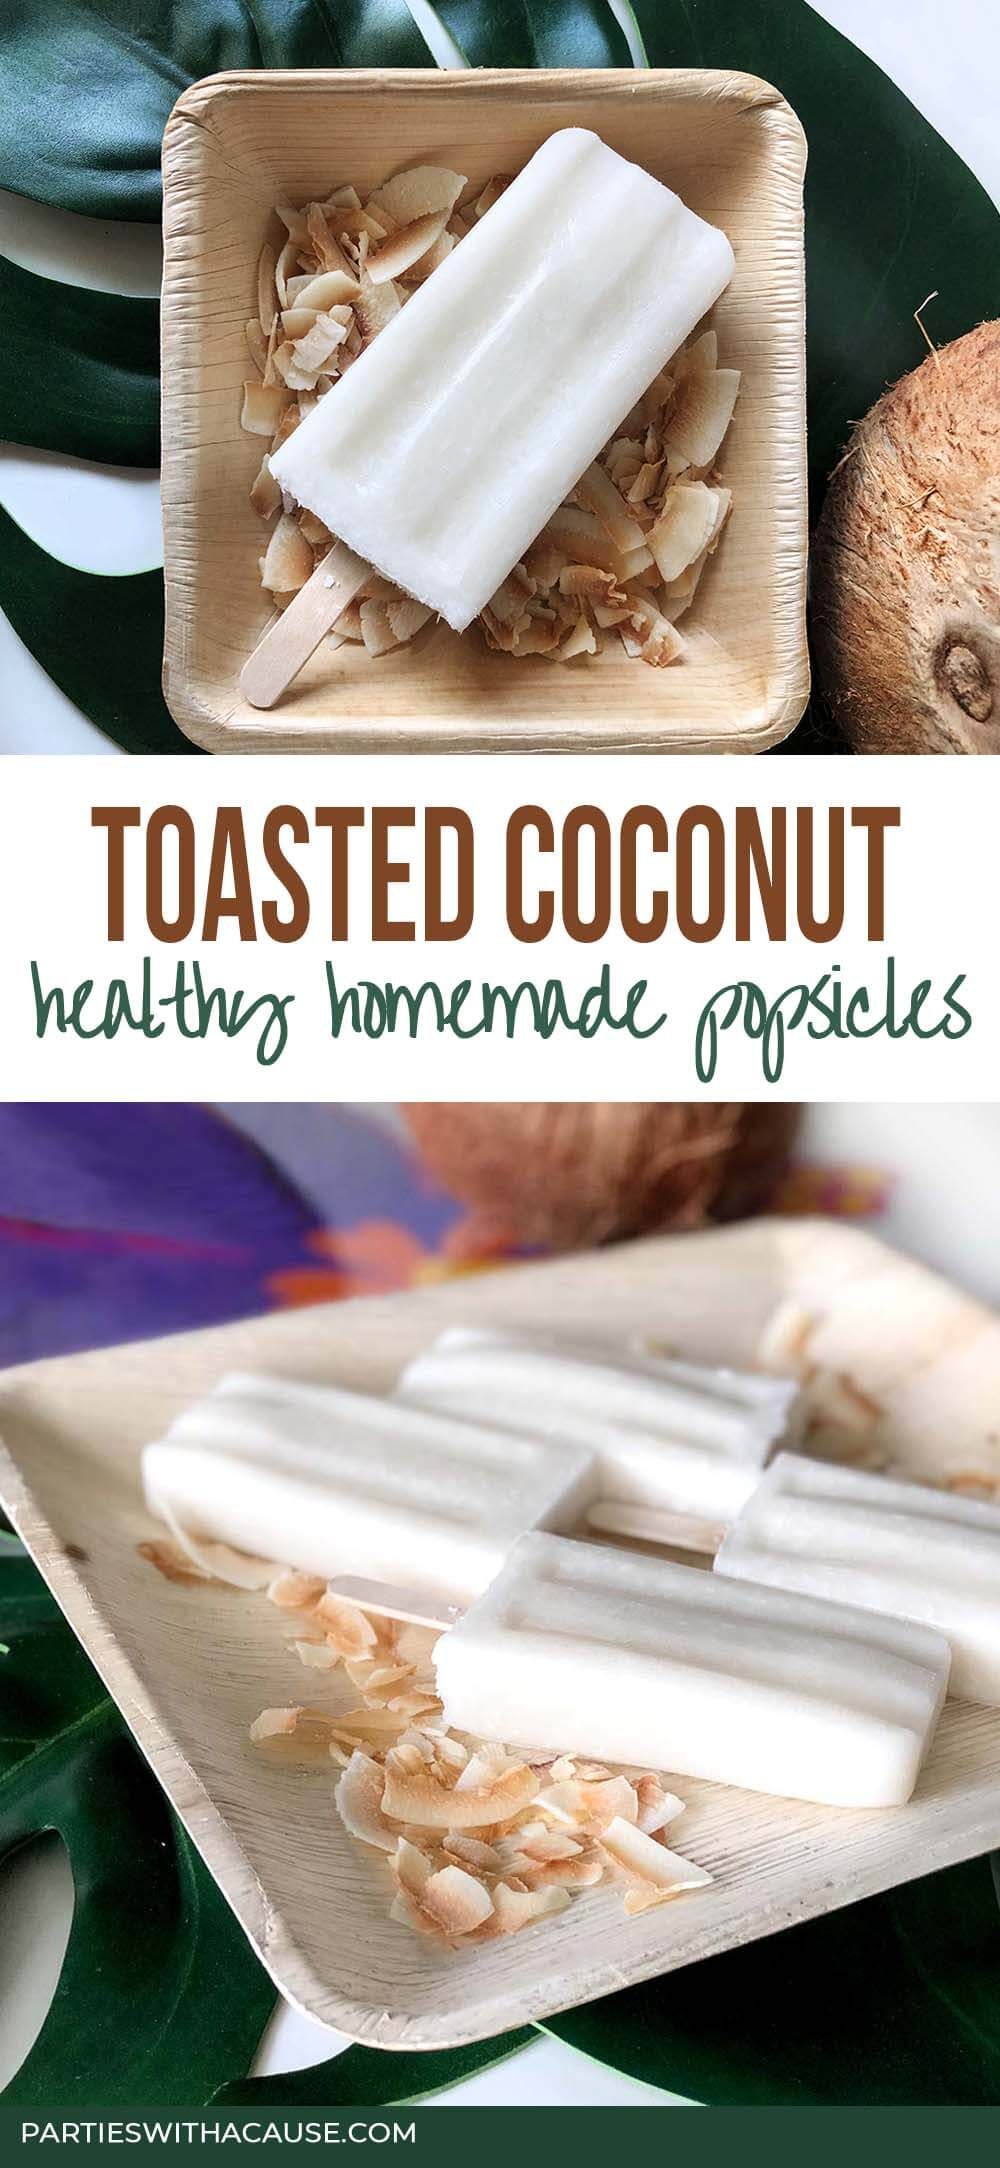 popsicles on plate with toasted coconut - how to make coconut popsicles